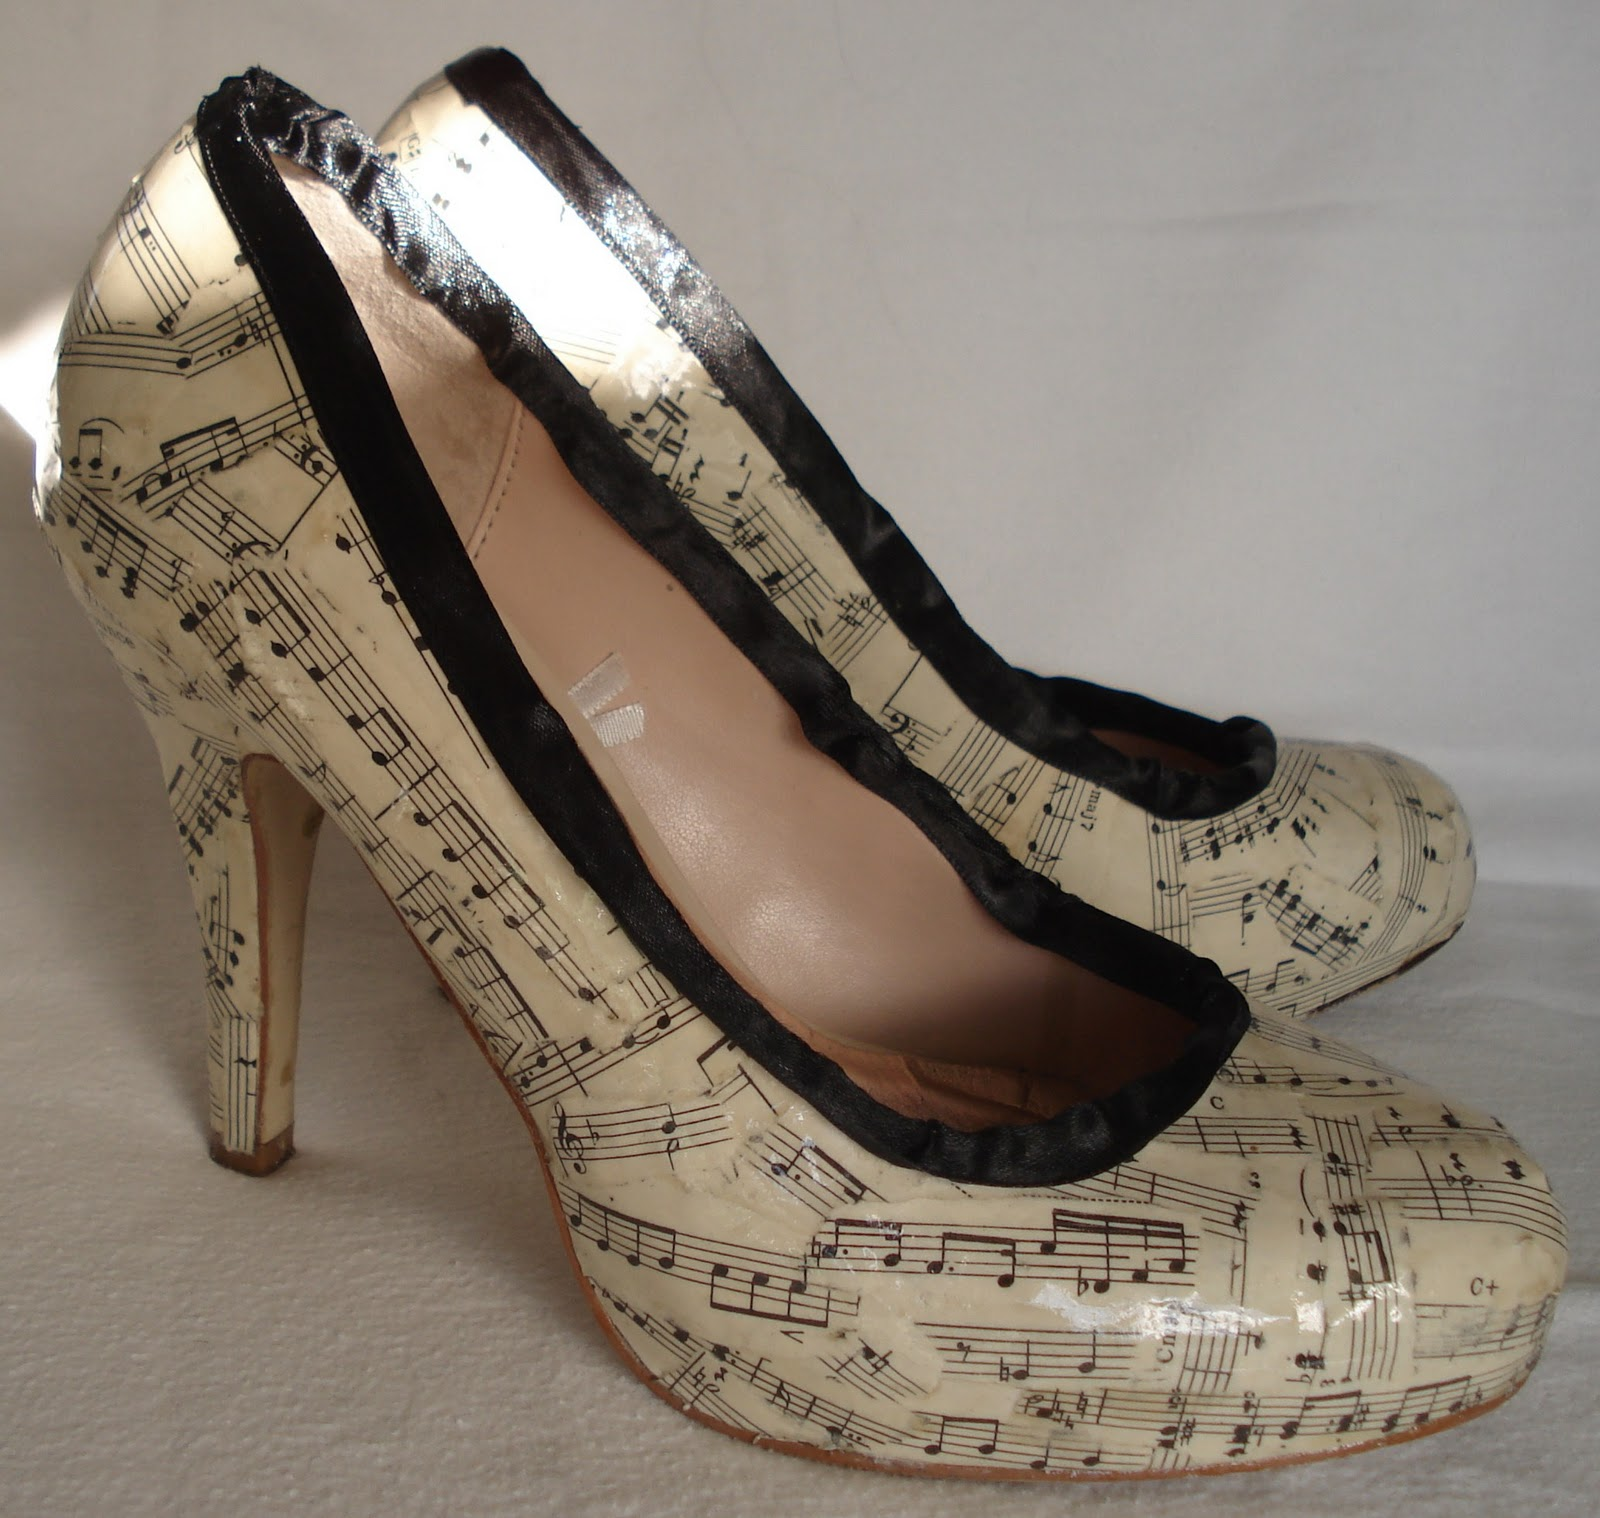 Creative You!: Craft a Pair of Decoupage Shoes